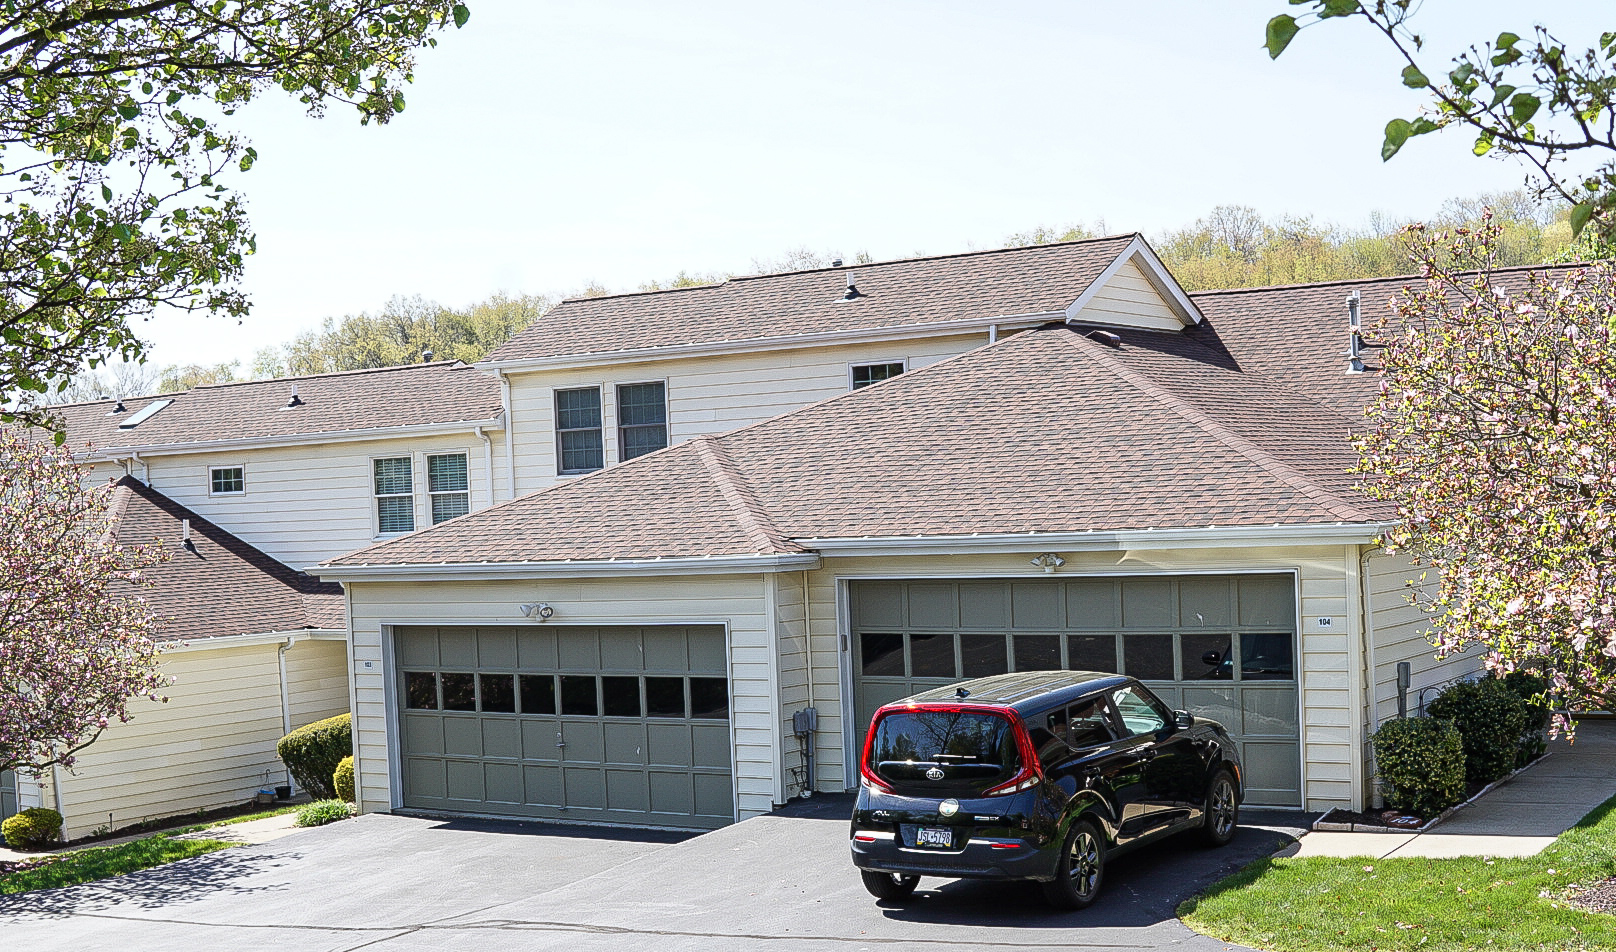 Peters Township Condo/HOA Commercial Roofing Project